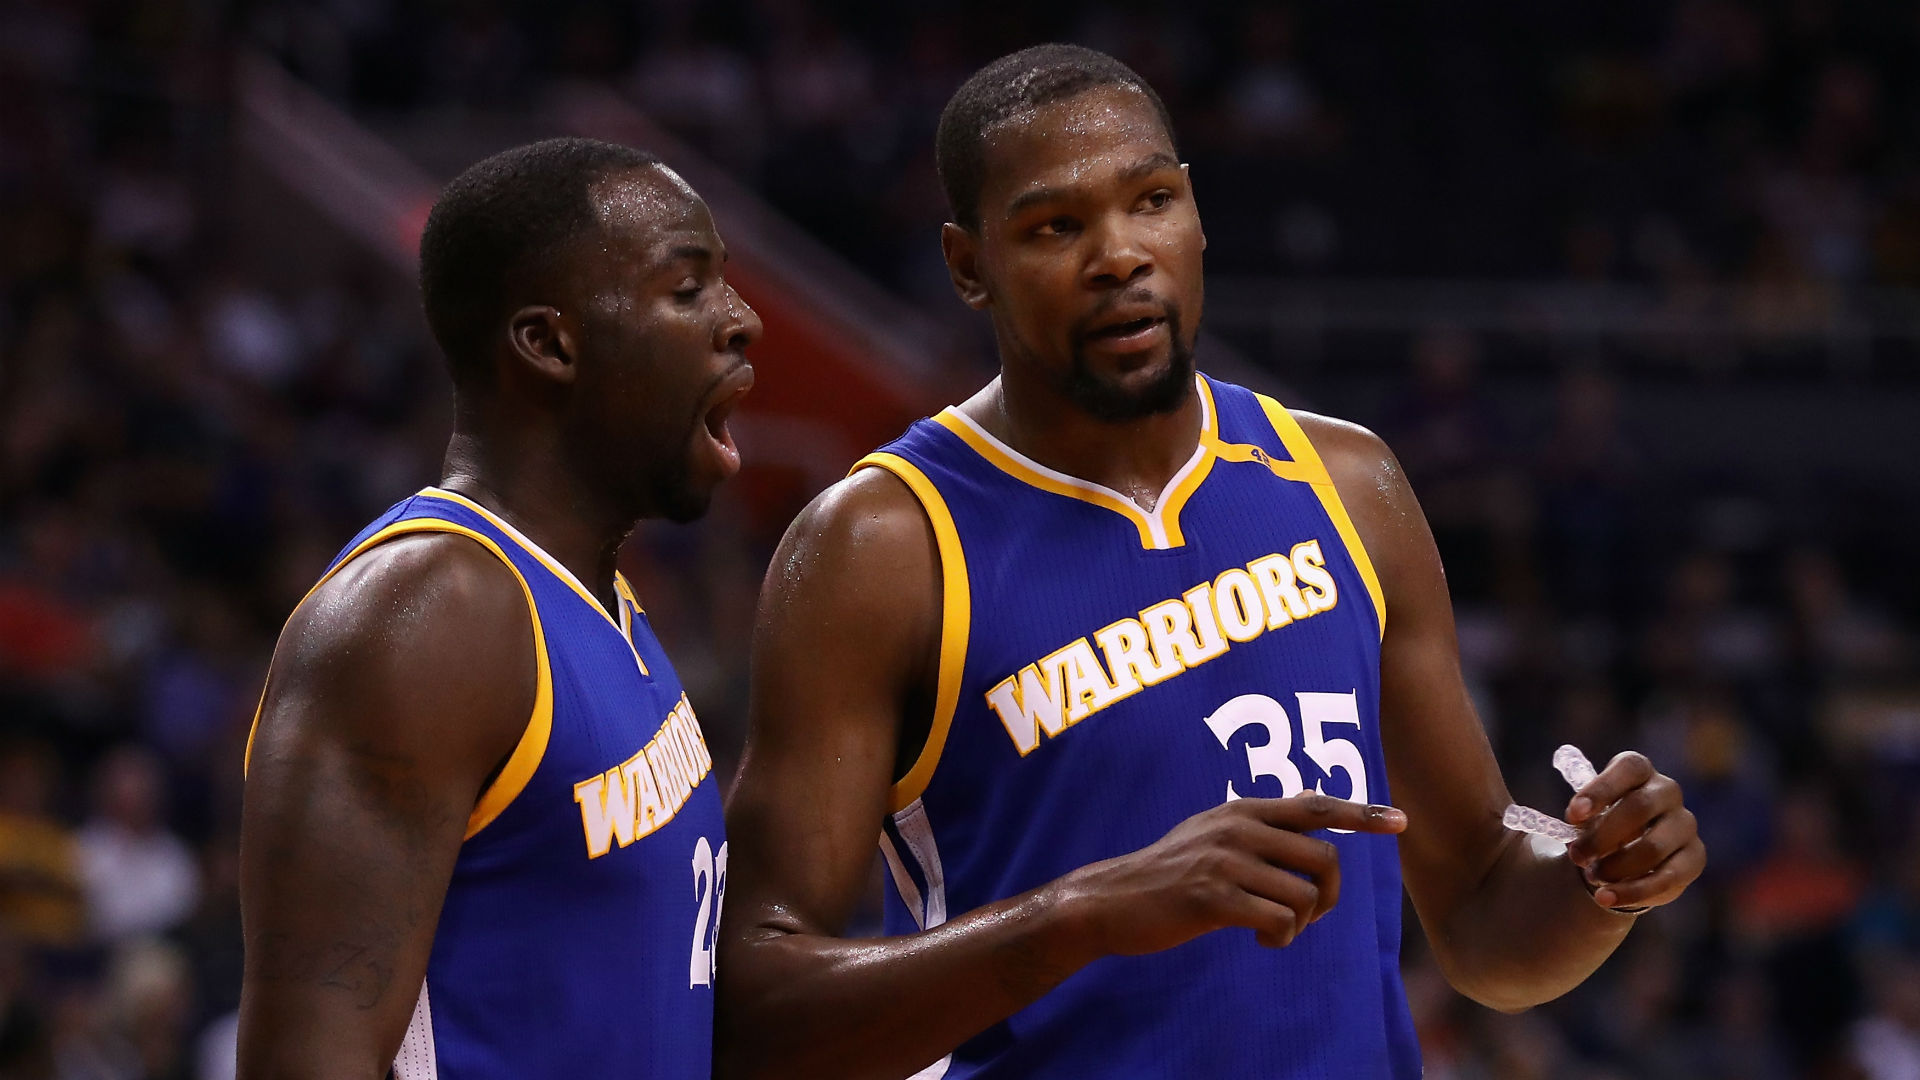 Kevin durant thinks his meme with draymond green is hilarious nba sporting news